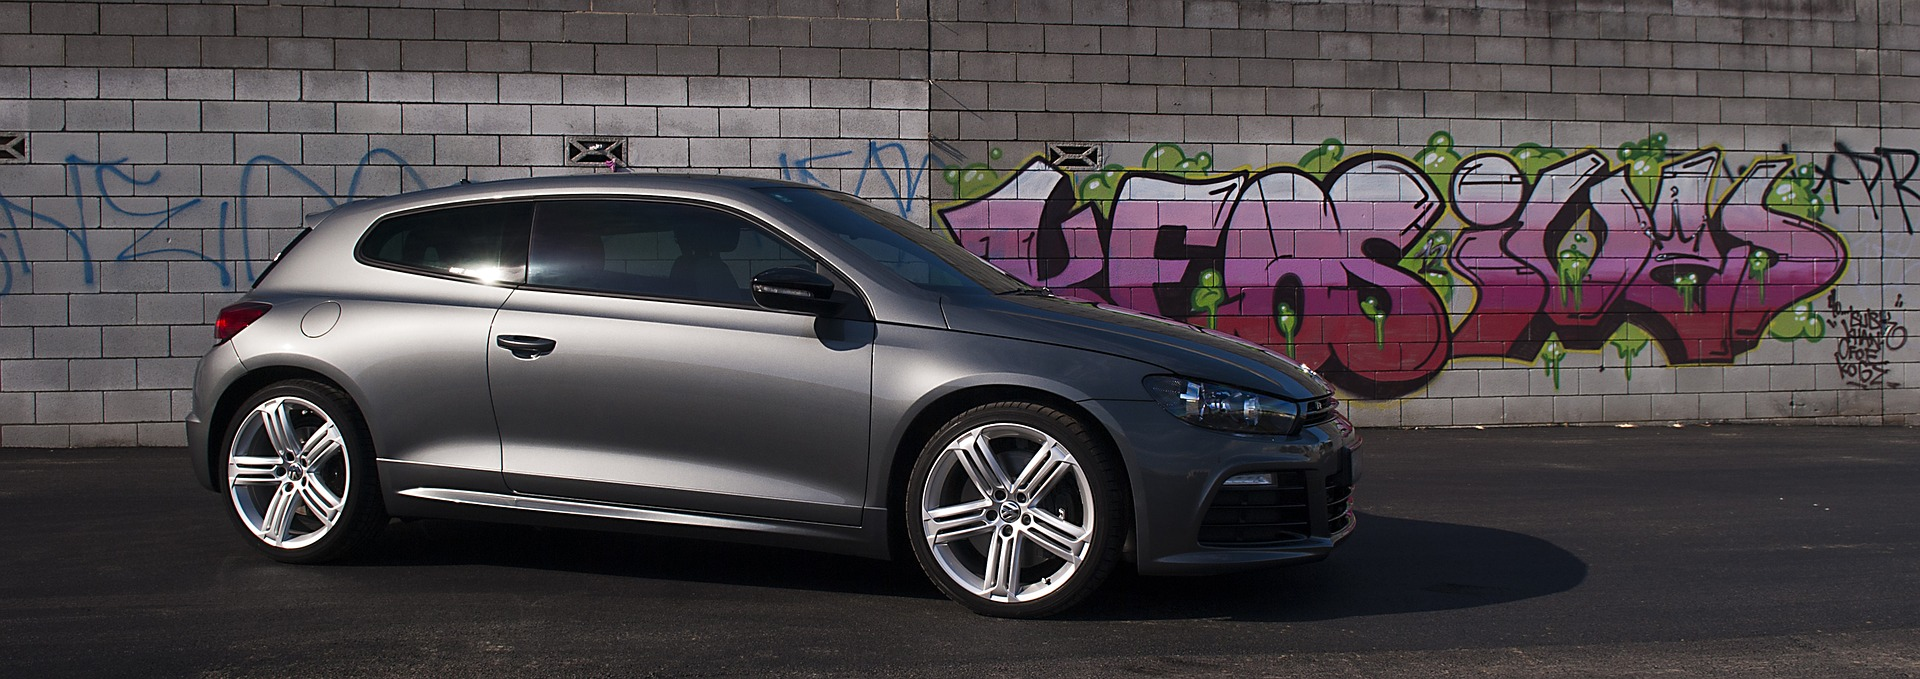 Volkswagen Scirocco against a graffiti background